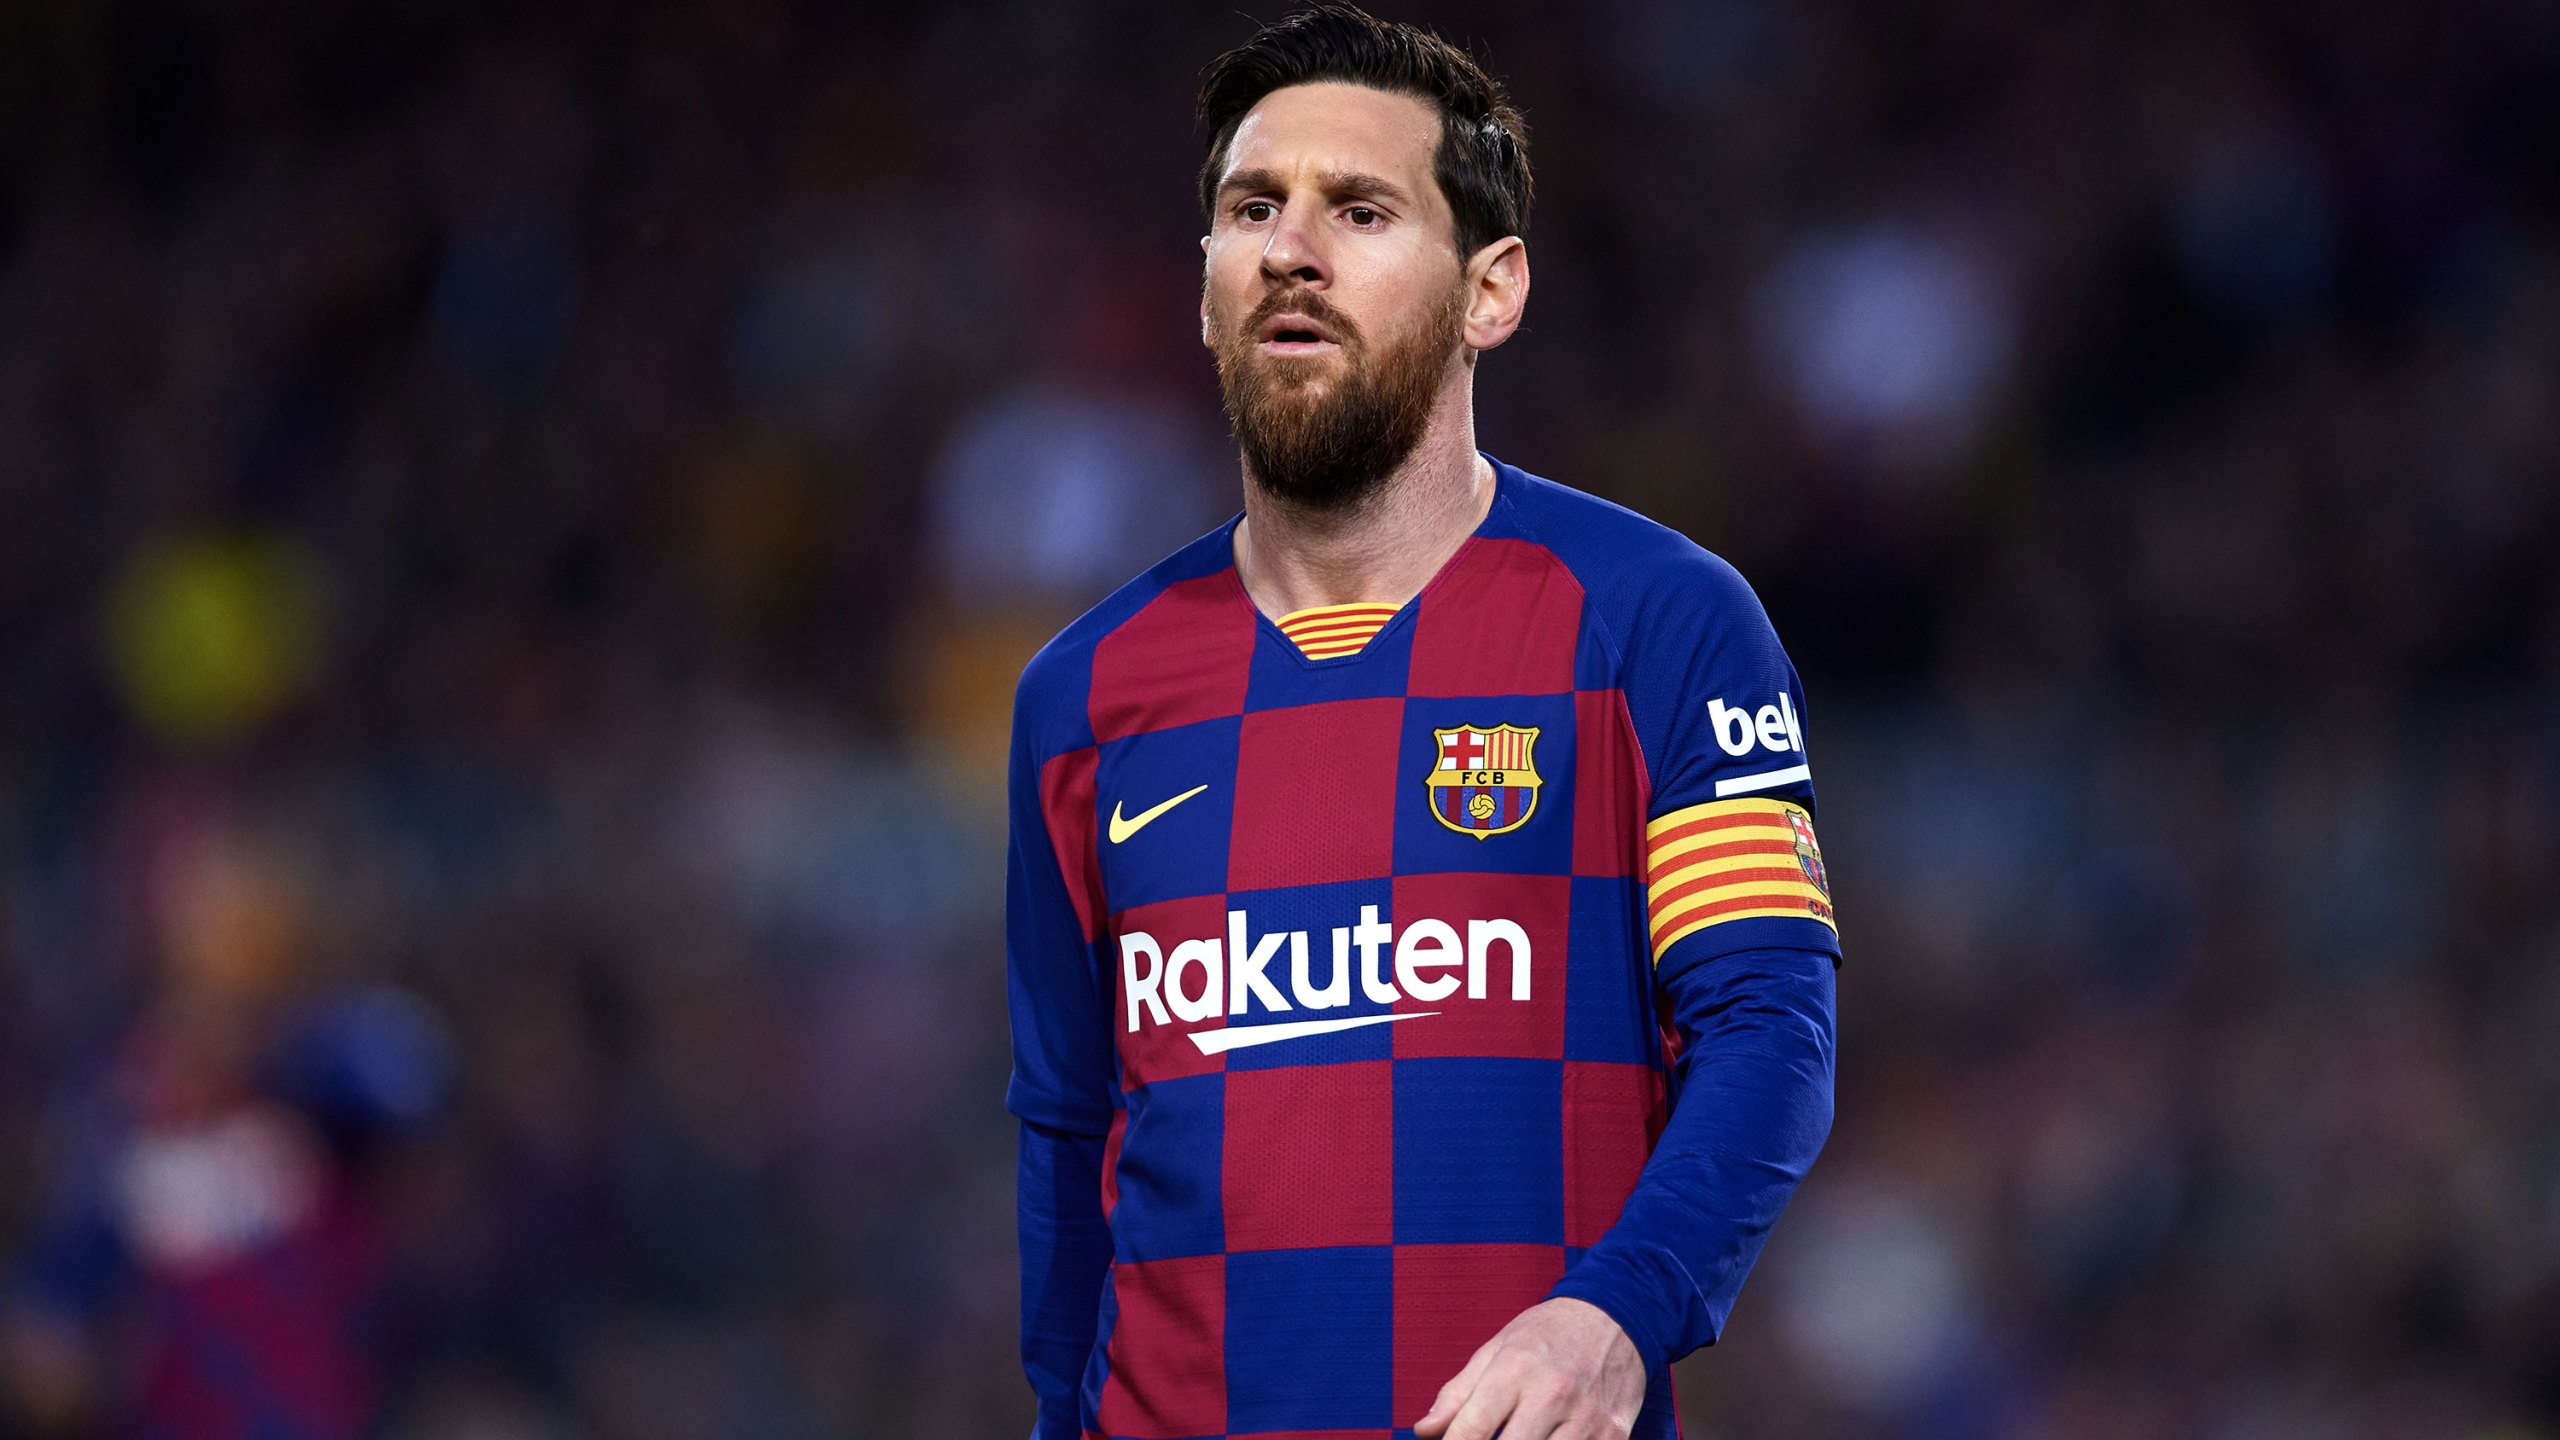 Lionel Messi Wants To Leave Barcelona Wgn Tv